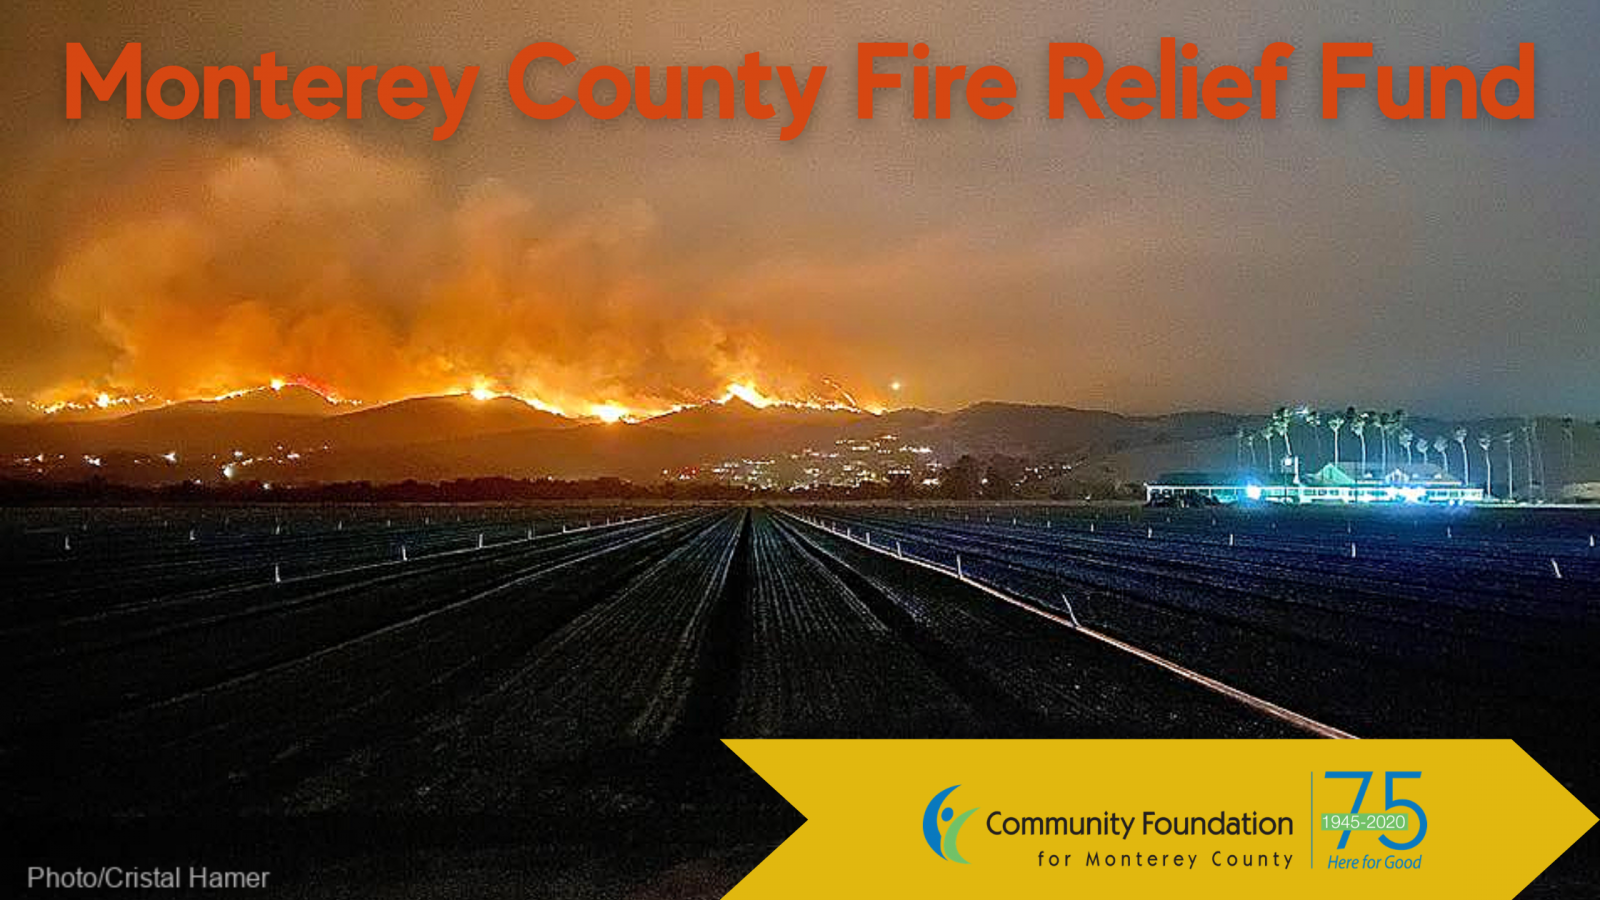 Monterey County Fire Relief Fund Created